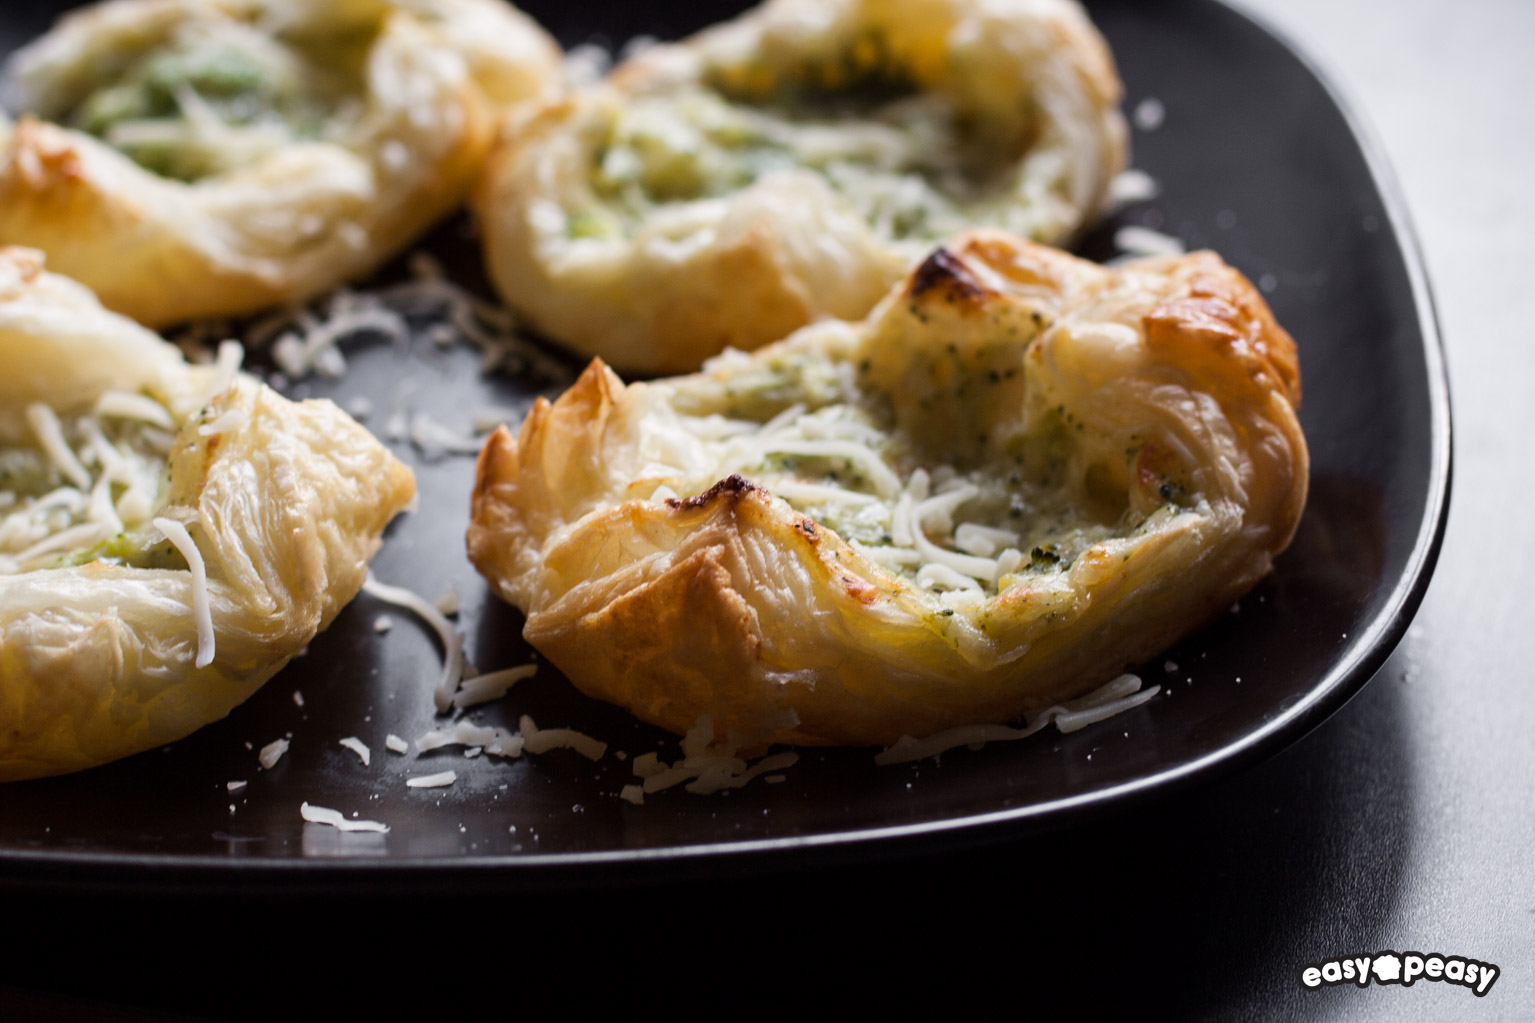 Broccoli puffs